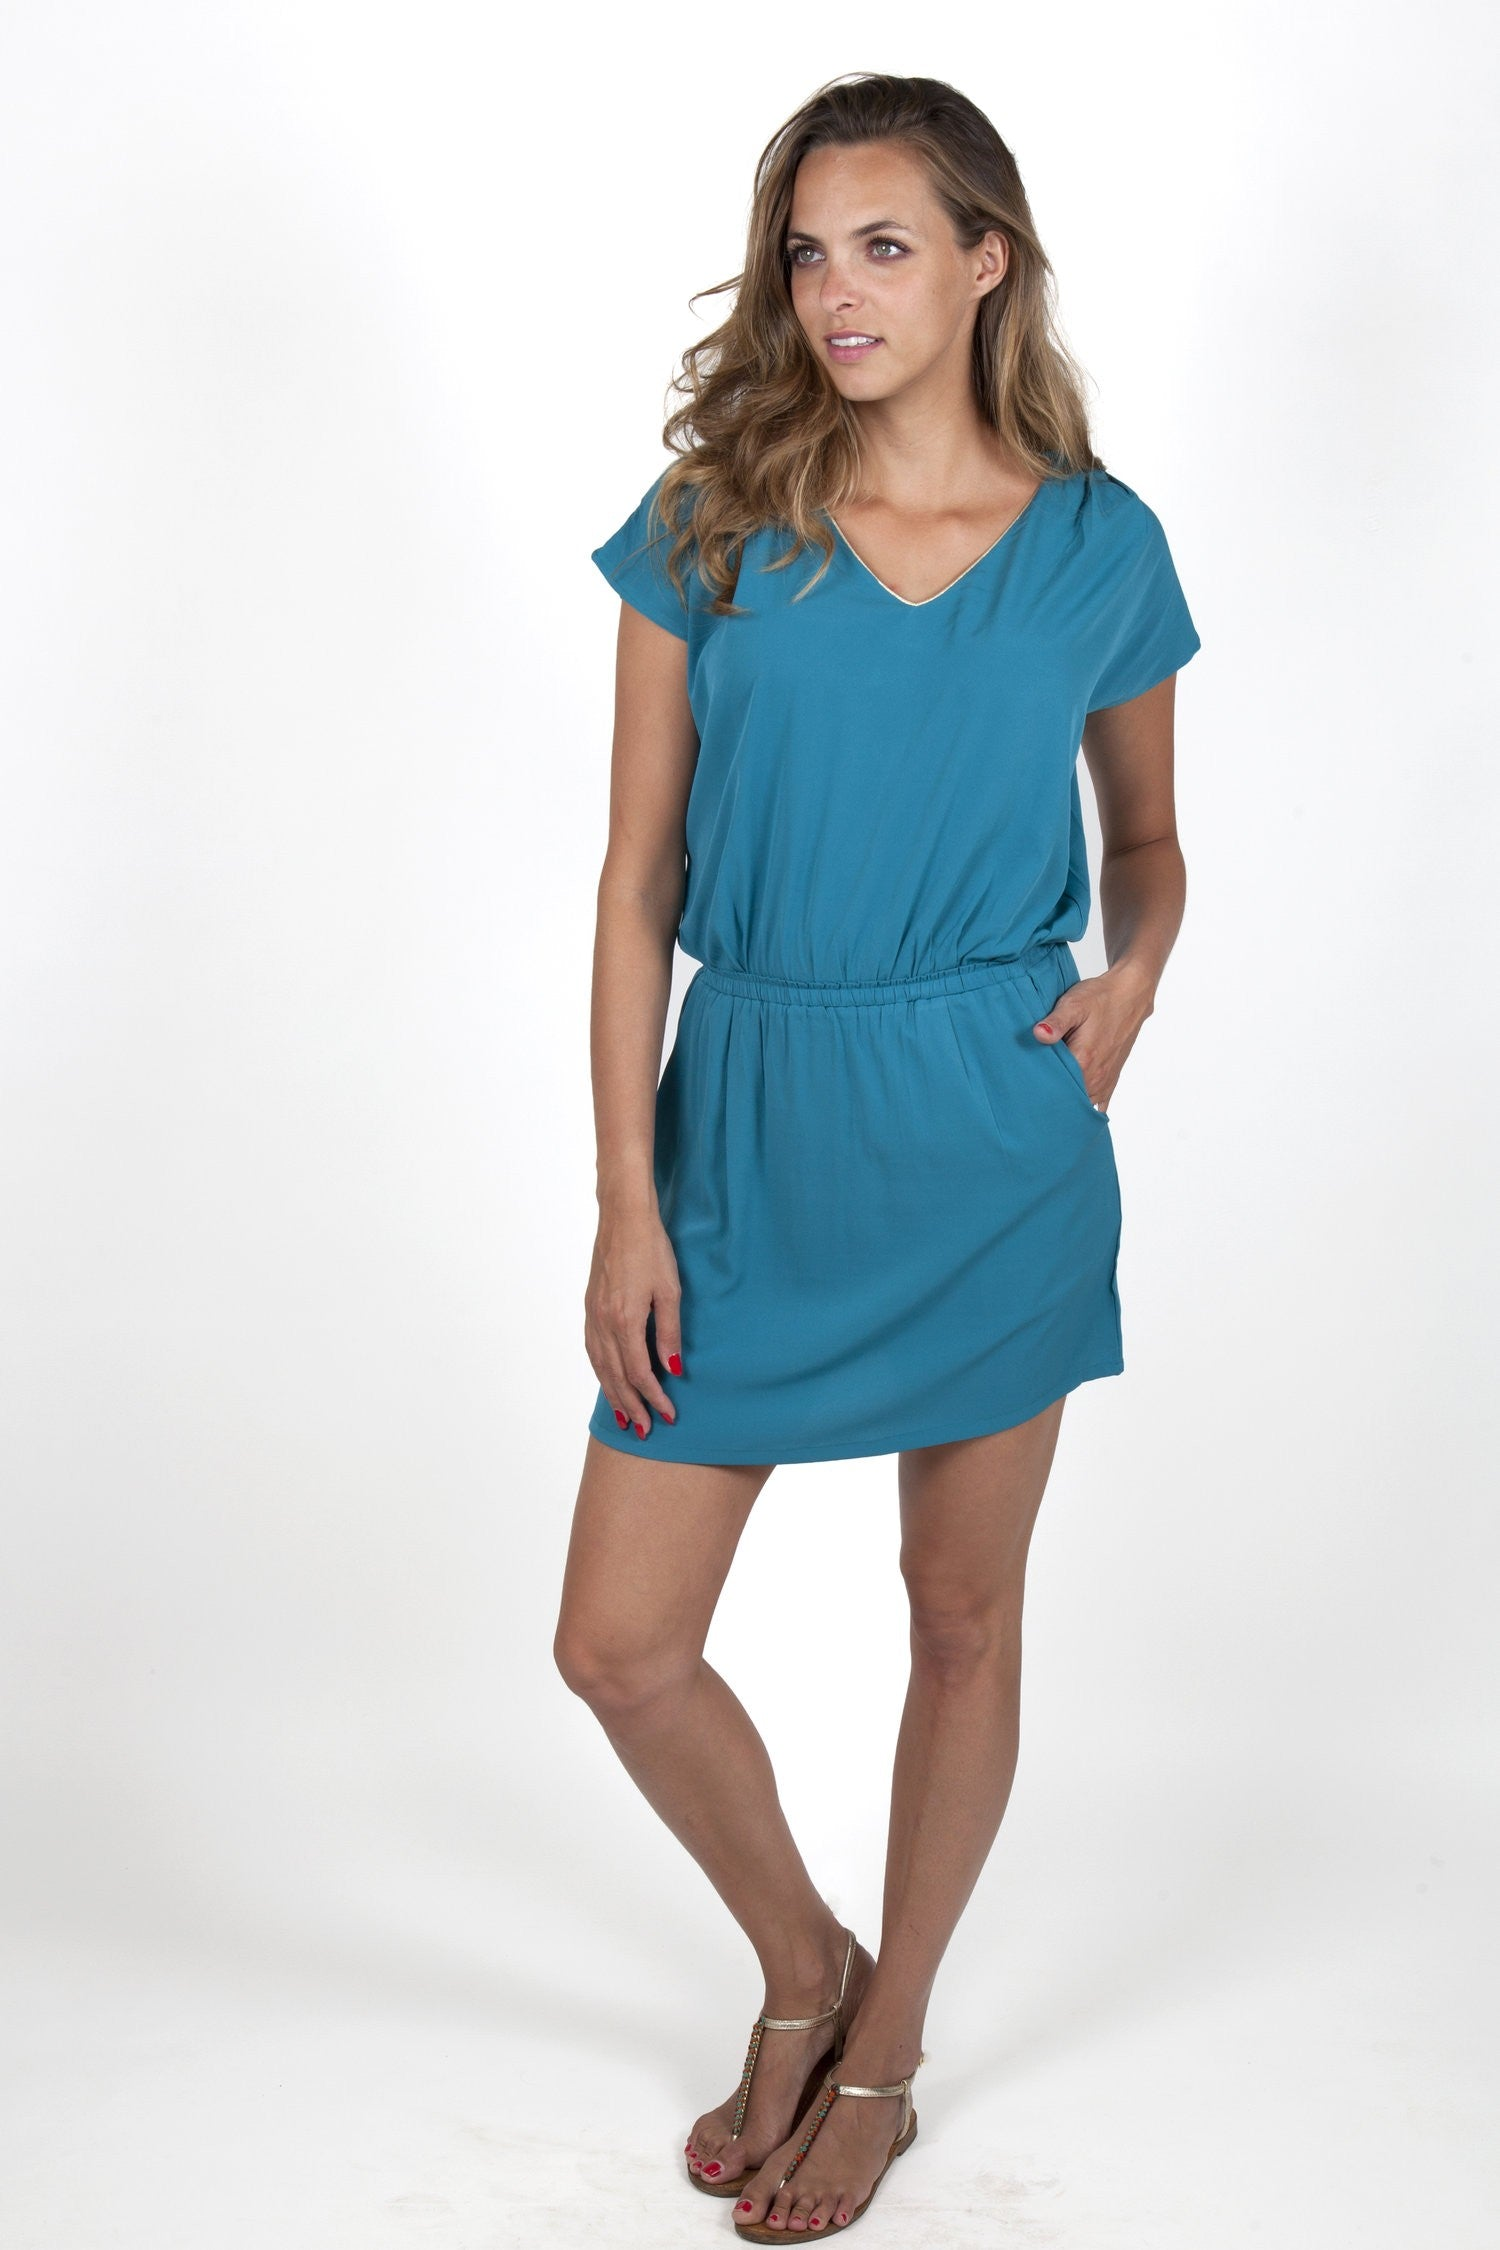 Sofia Green Dress Capsule Collection By Juliette - S / Green - Dresses Capsule Collection By Juliette